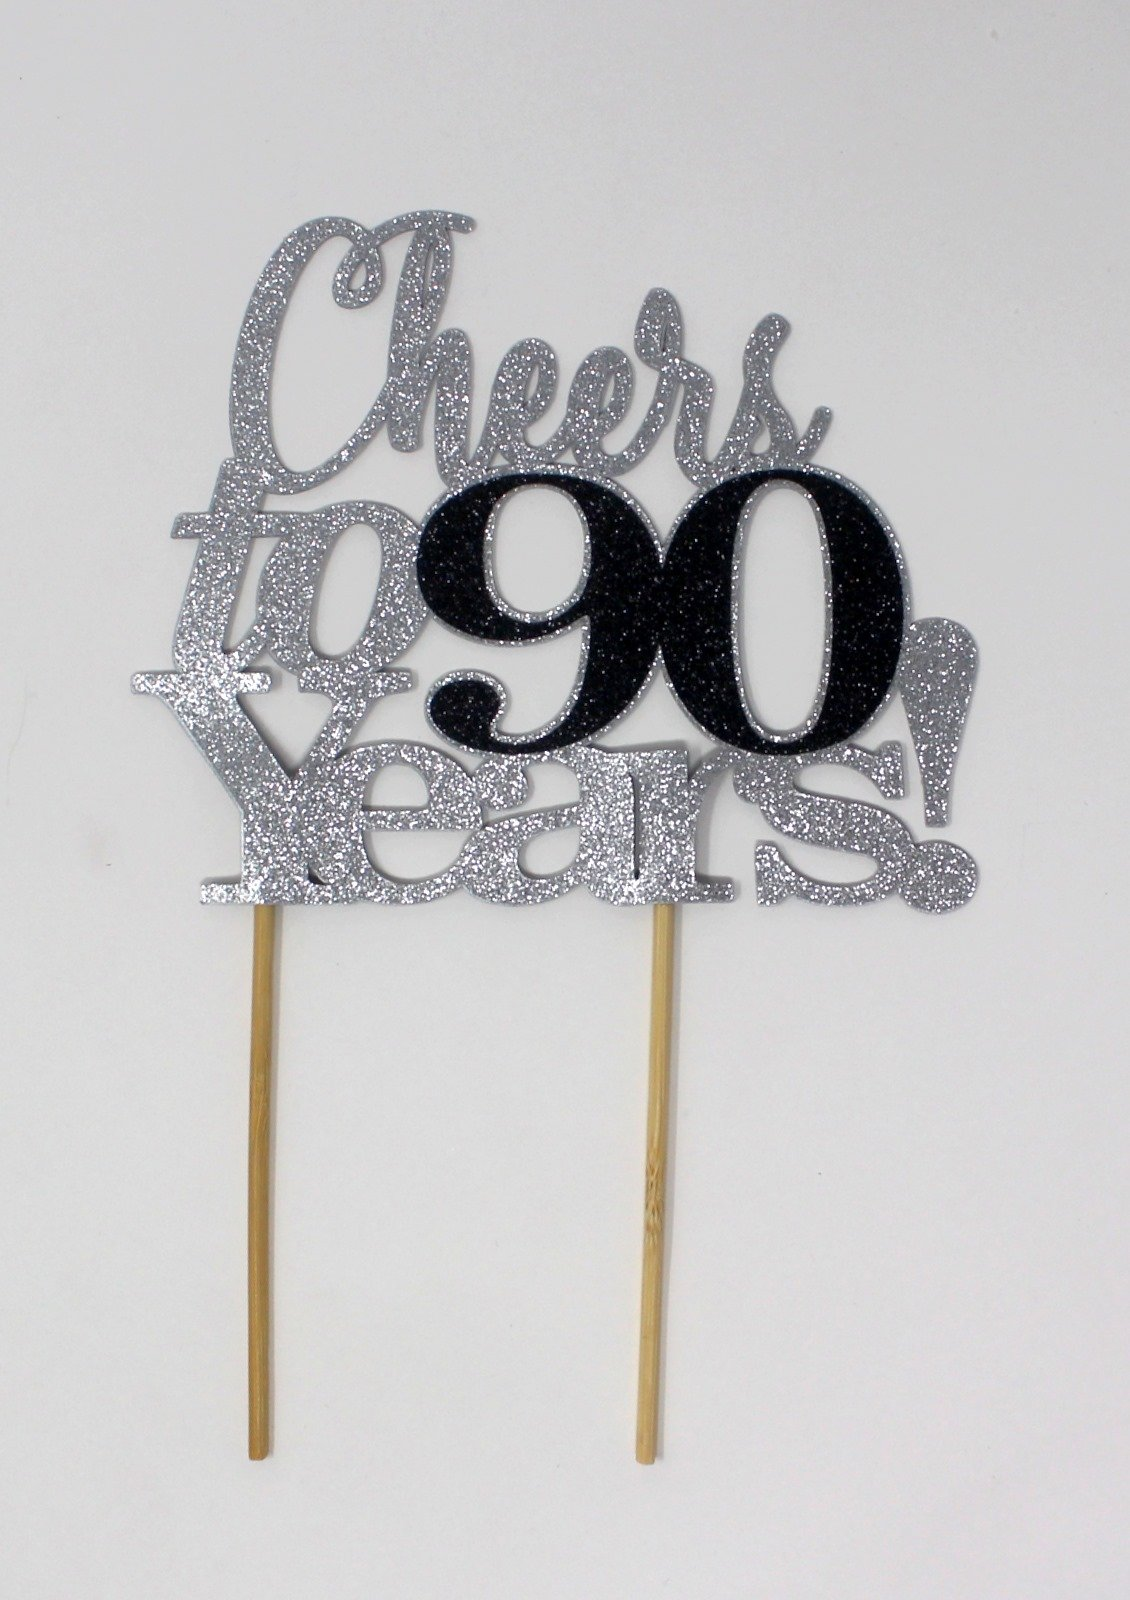 All About Details Cheers to 90 Years! Cake Topper,1pc, Birthday, Anniversary, Party Decor, Glitter Topper (Silver & Black)